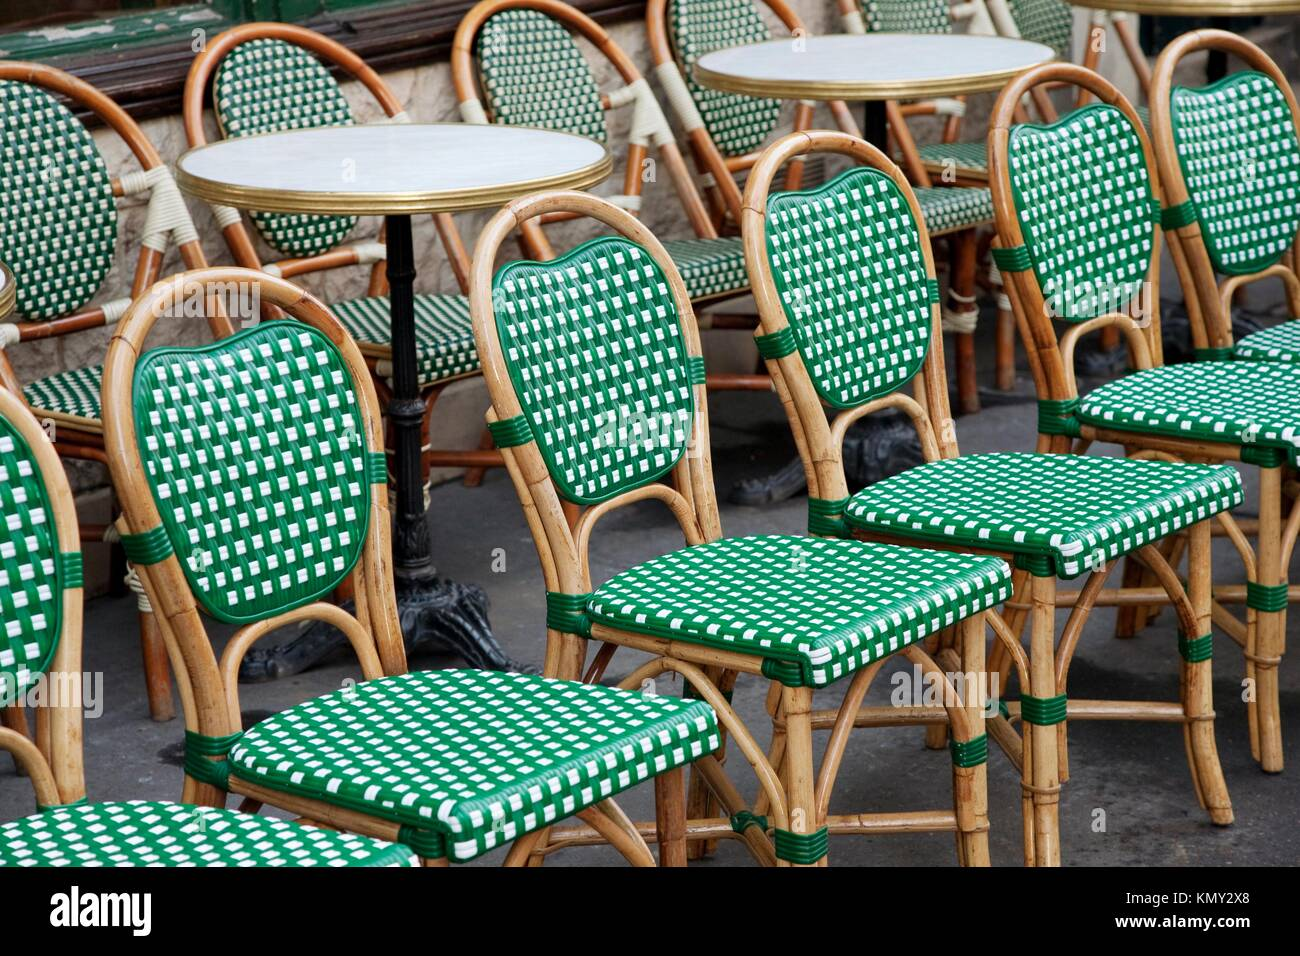 Beau Green And White Cafe Chairs In Paris, France   Stock Image